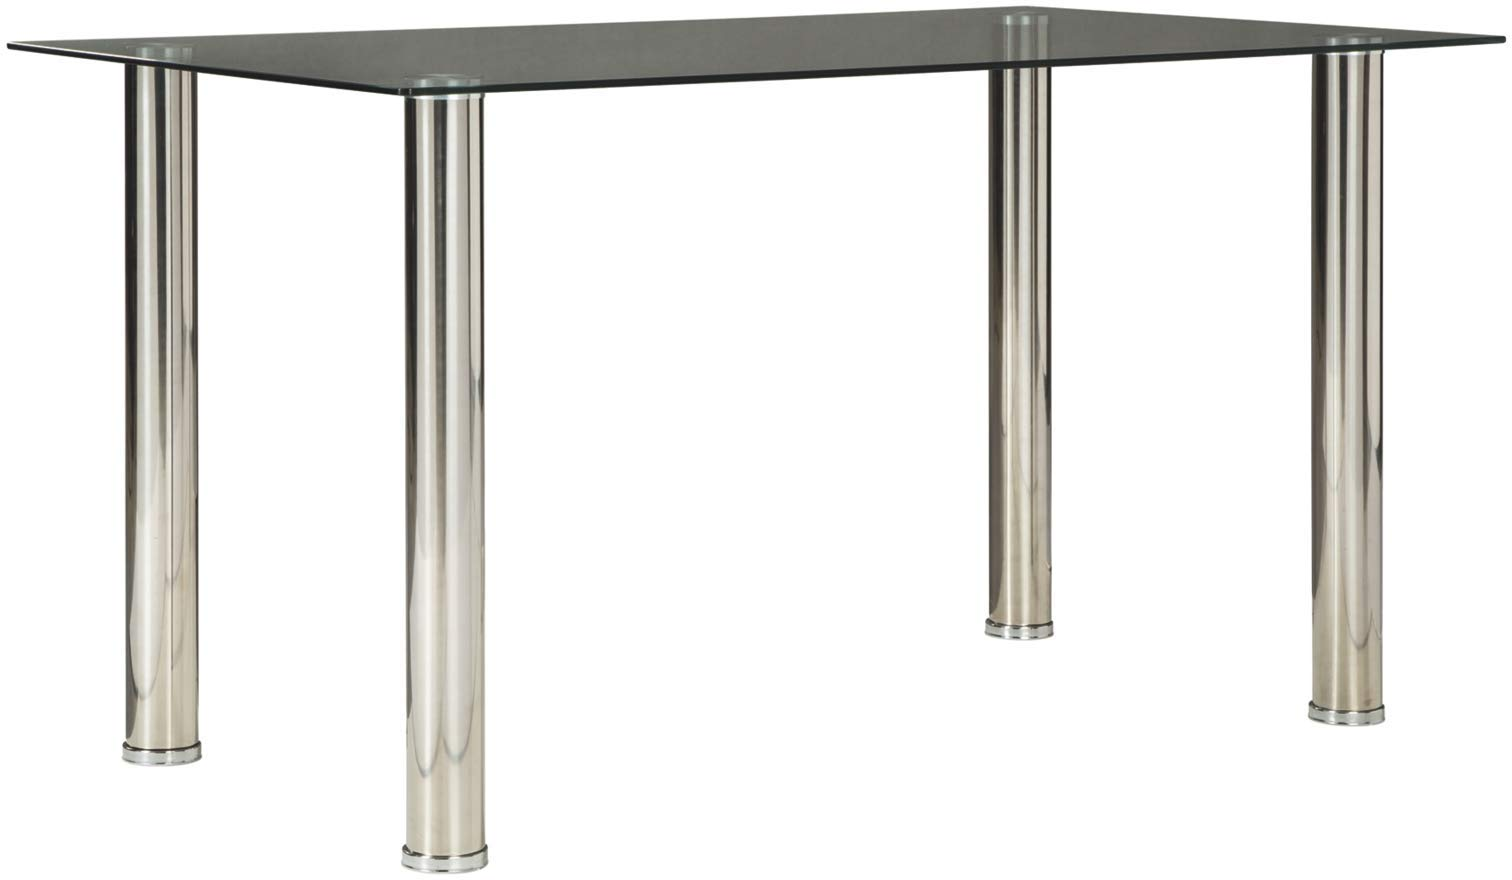 Signature Design by Ashley D170-125 Sariden Table, Rectangular, Black/White by Signature Design by Ashley